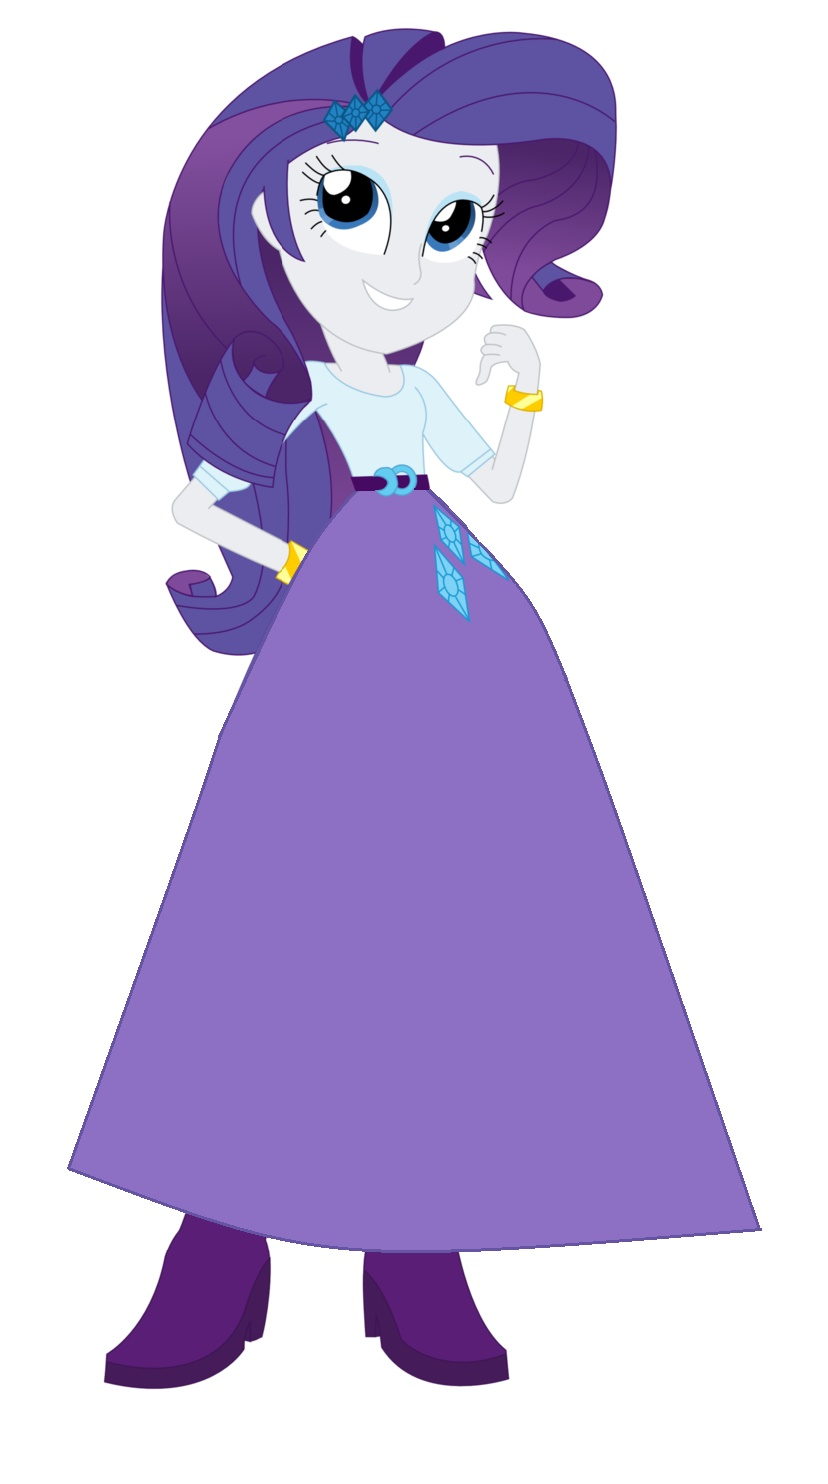 Animated Skirt rarity looking happy in a long skirtstarman1999 on